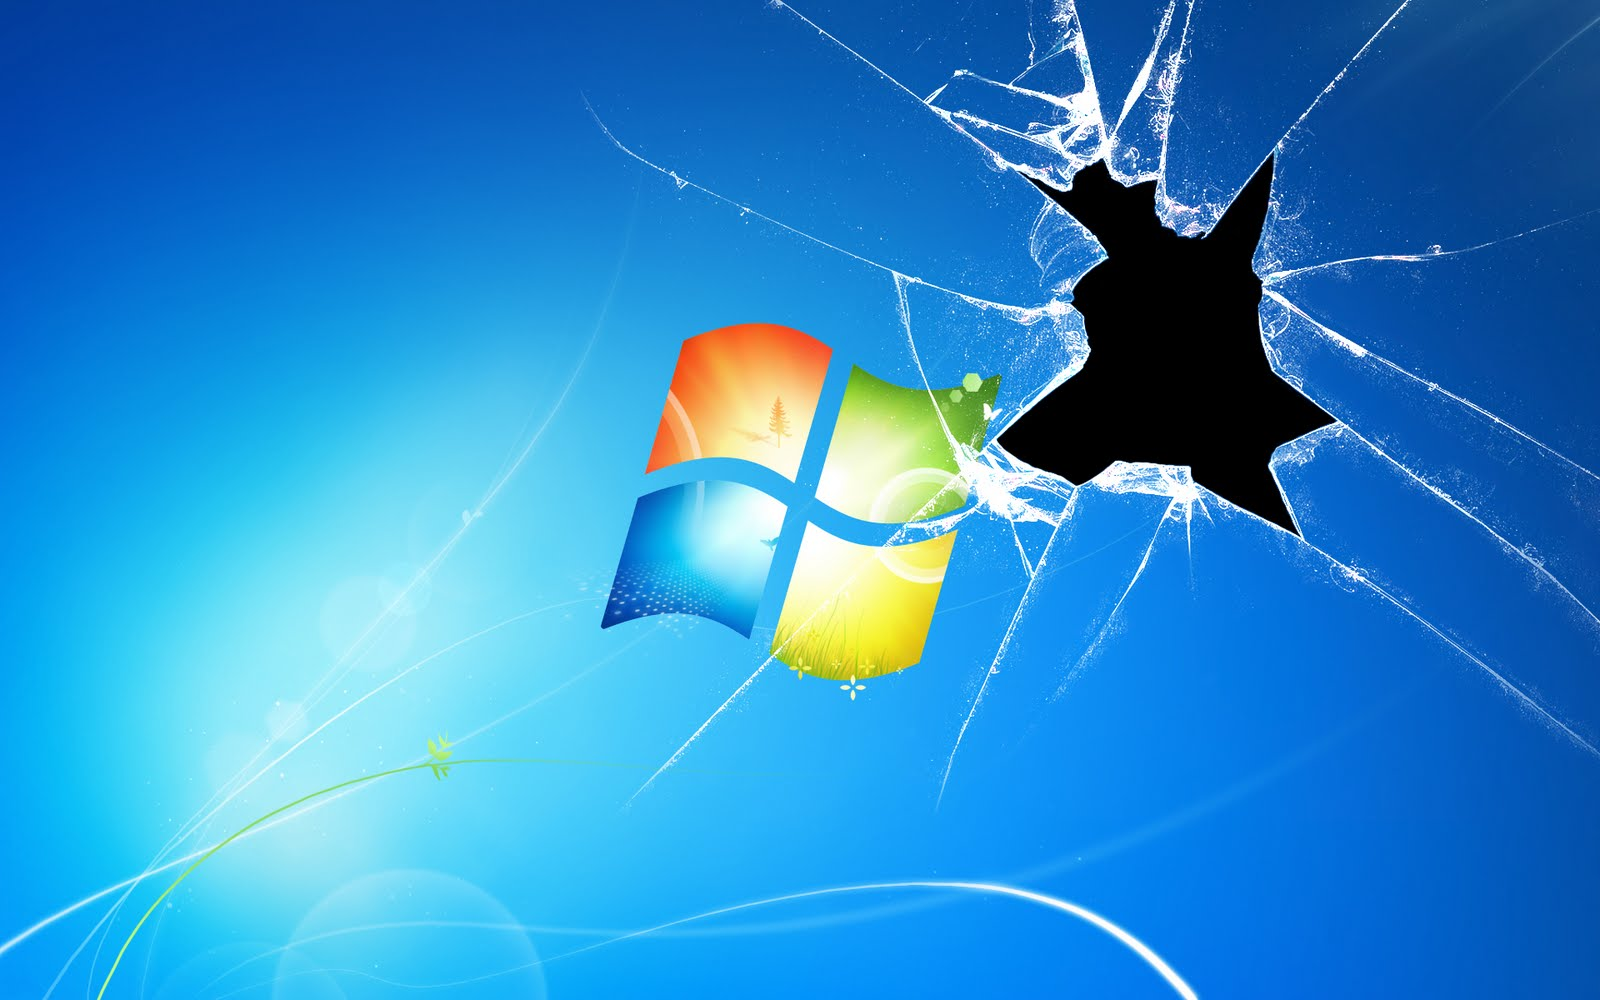 Broken Windows 7 hd wallpaper 1920x1200 100 out of 10 based on 1 1600x1000